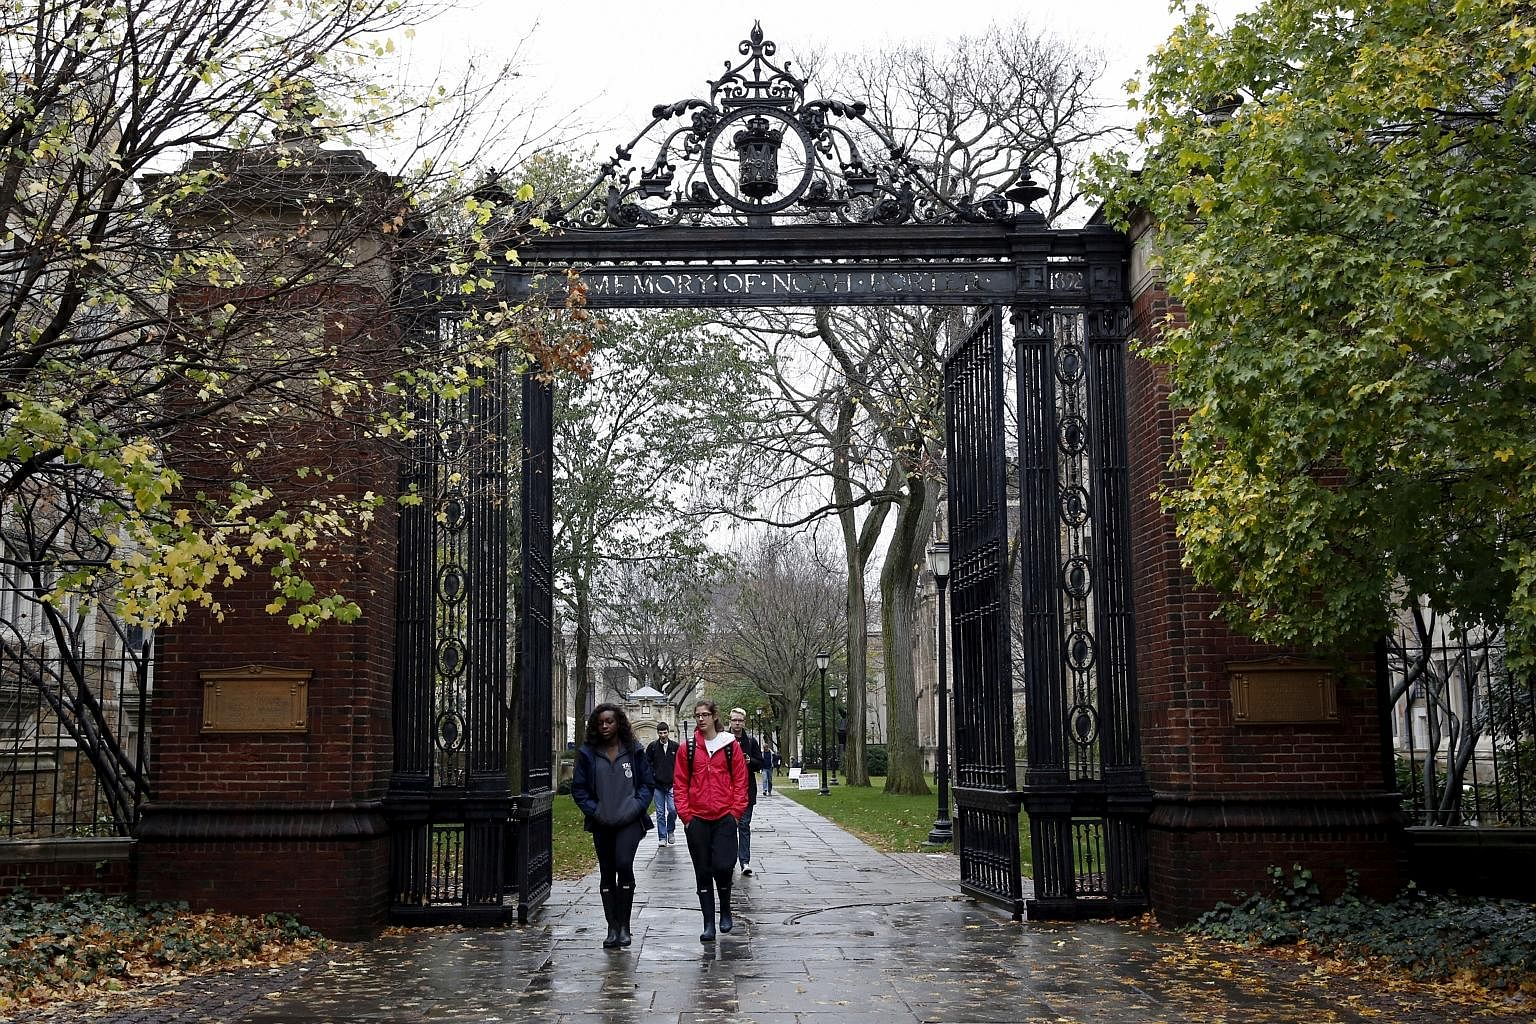 The campus of Yale University in New Haven, Connecticut. Dozens of wealthy parents have been indicted in the US for using bribery and fraud to get their children into highly selective schools, including Yale and Stanford.